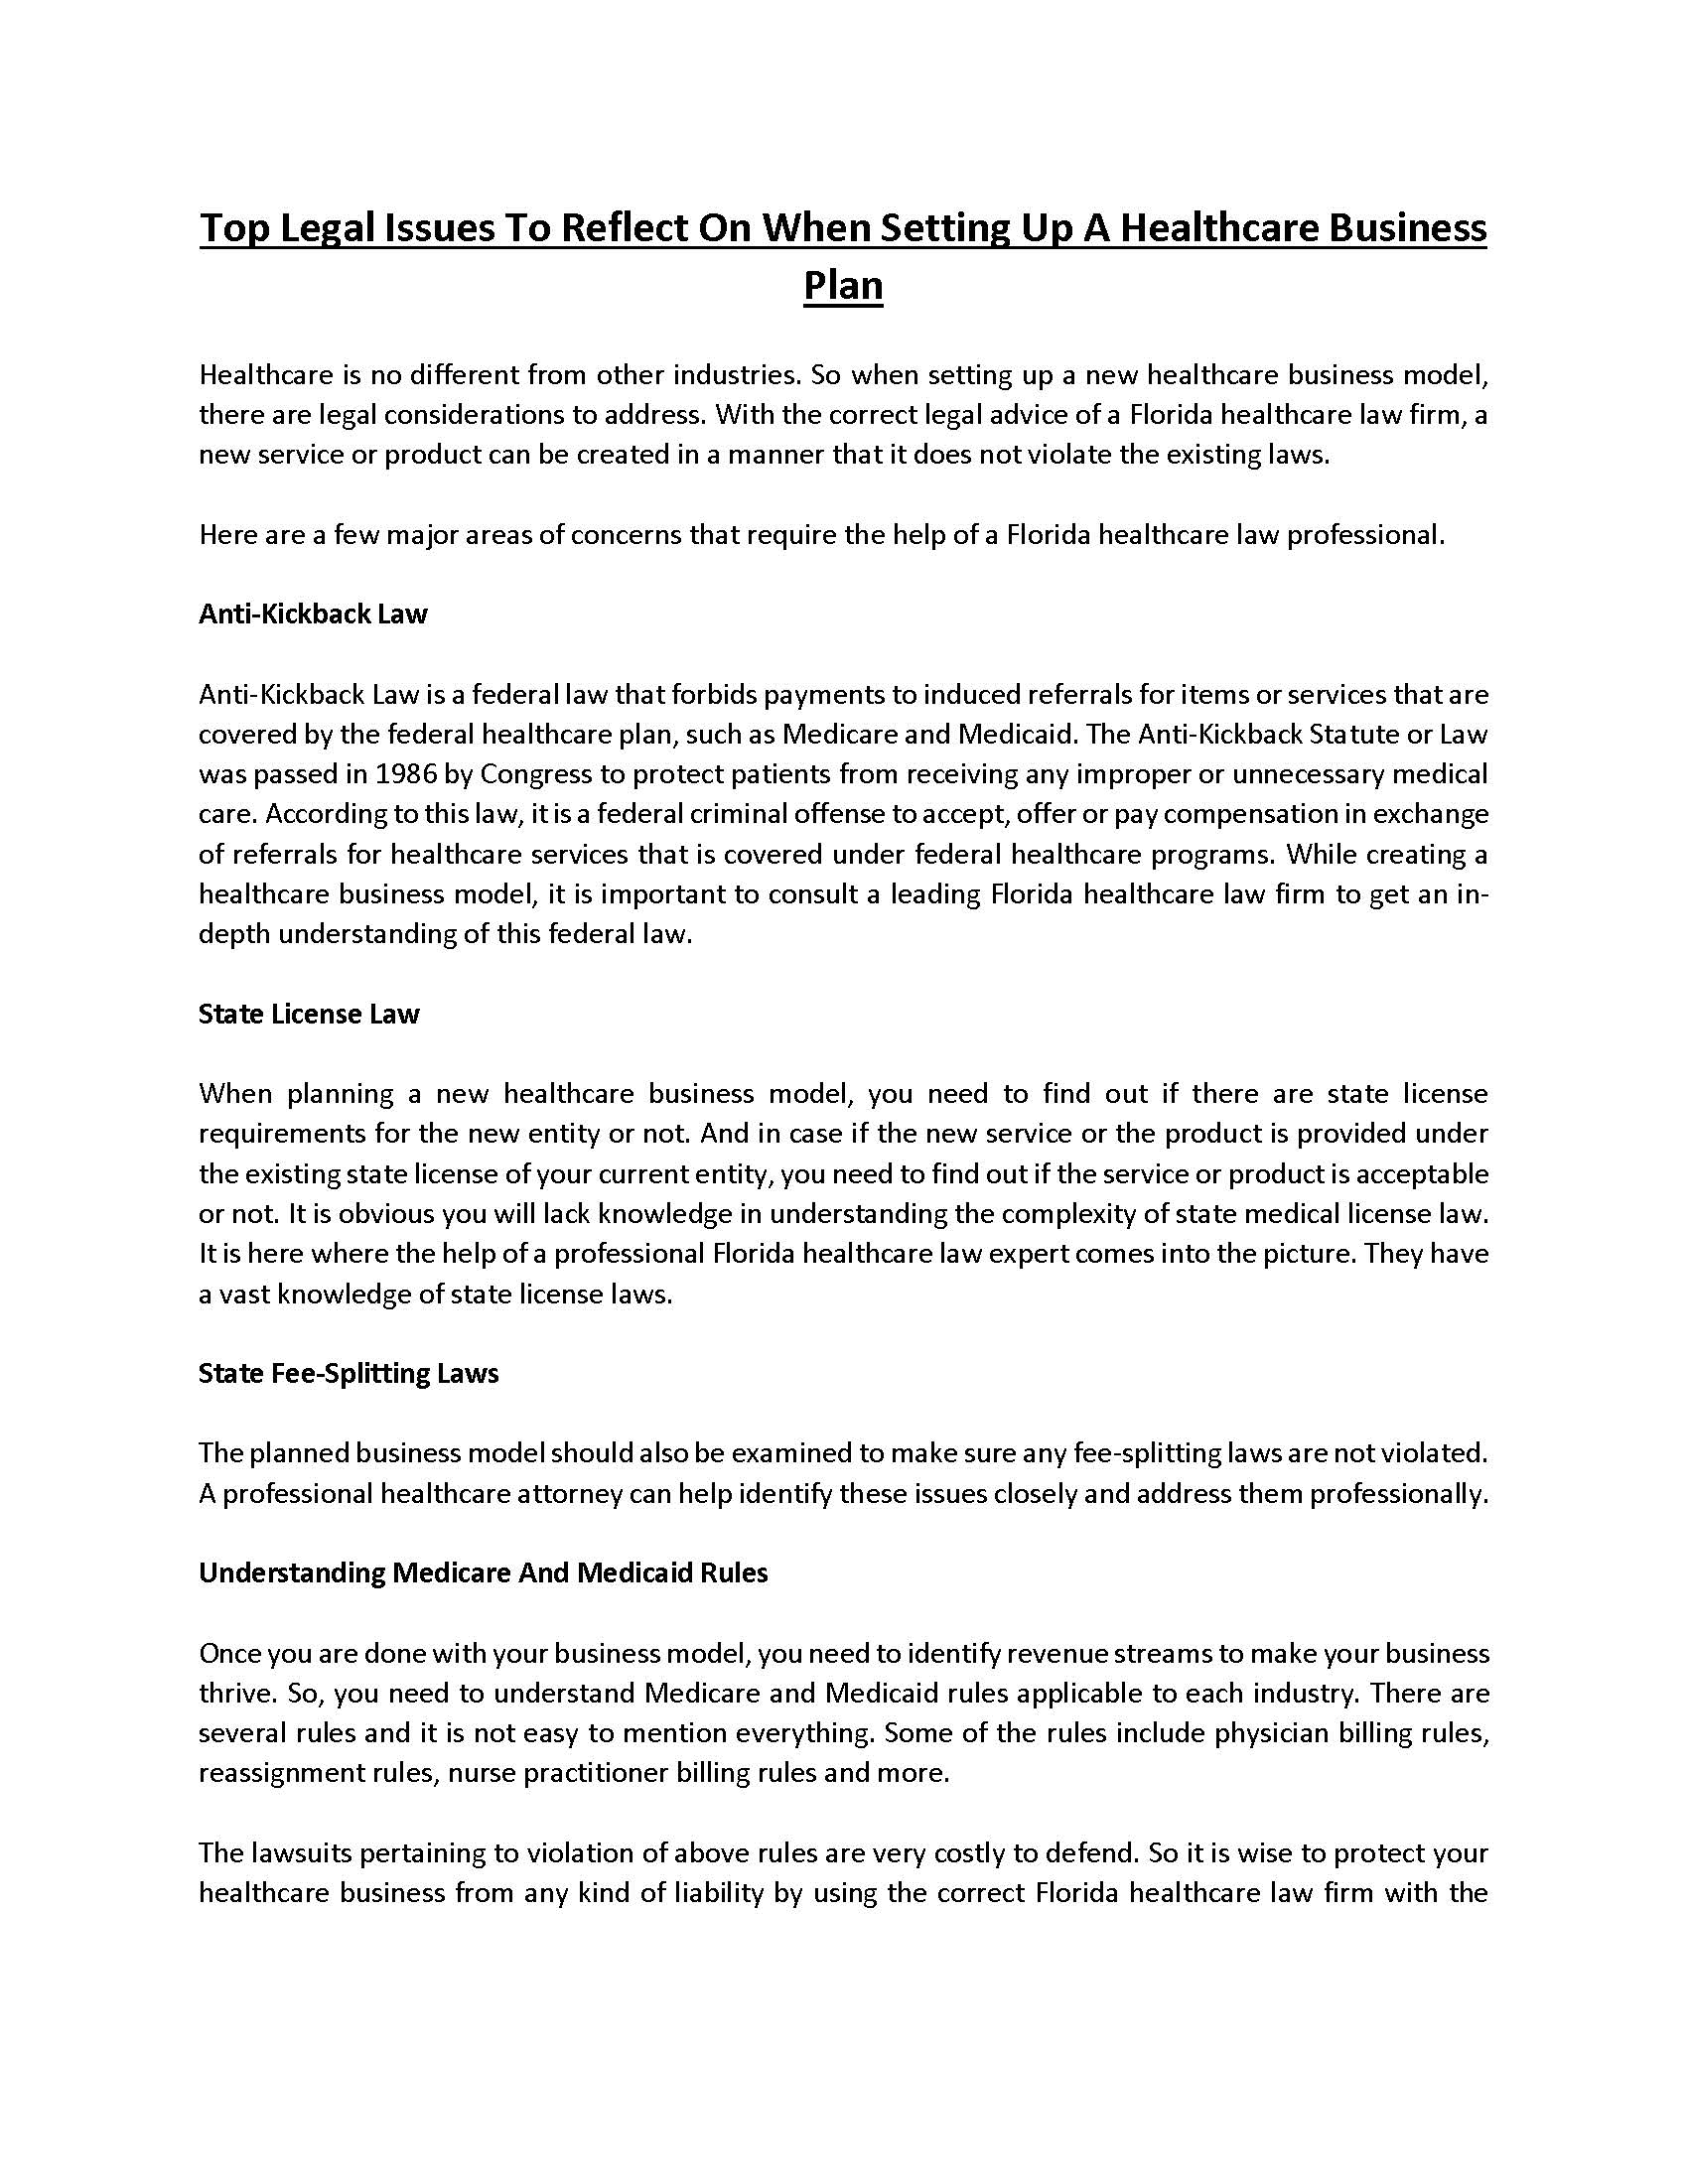 Professional press release writing services